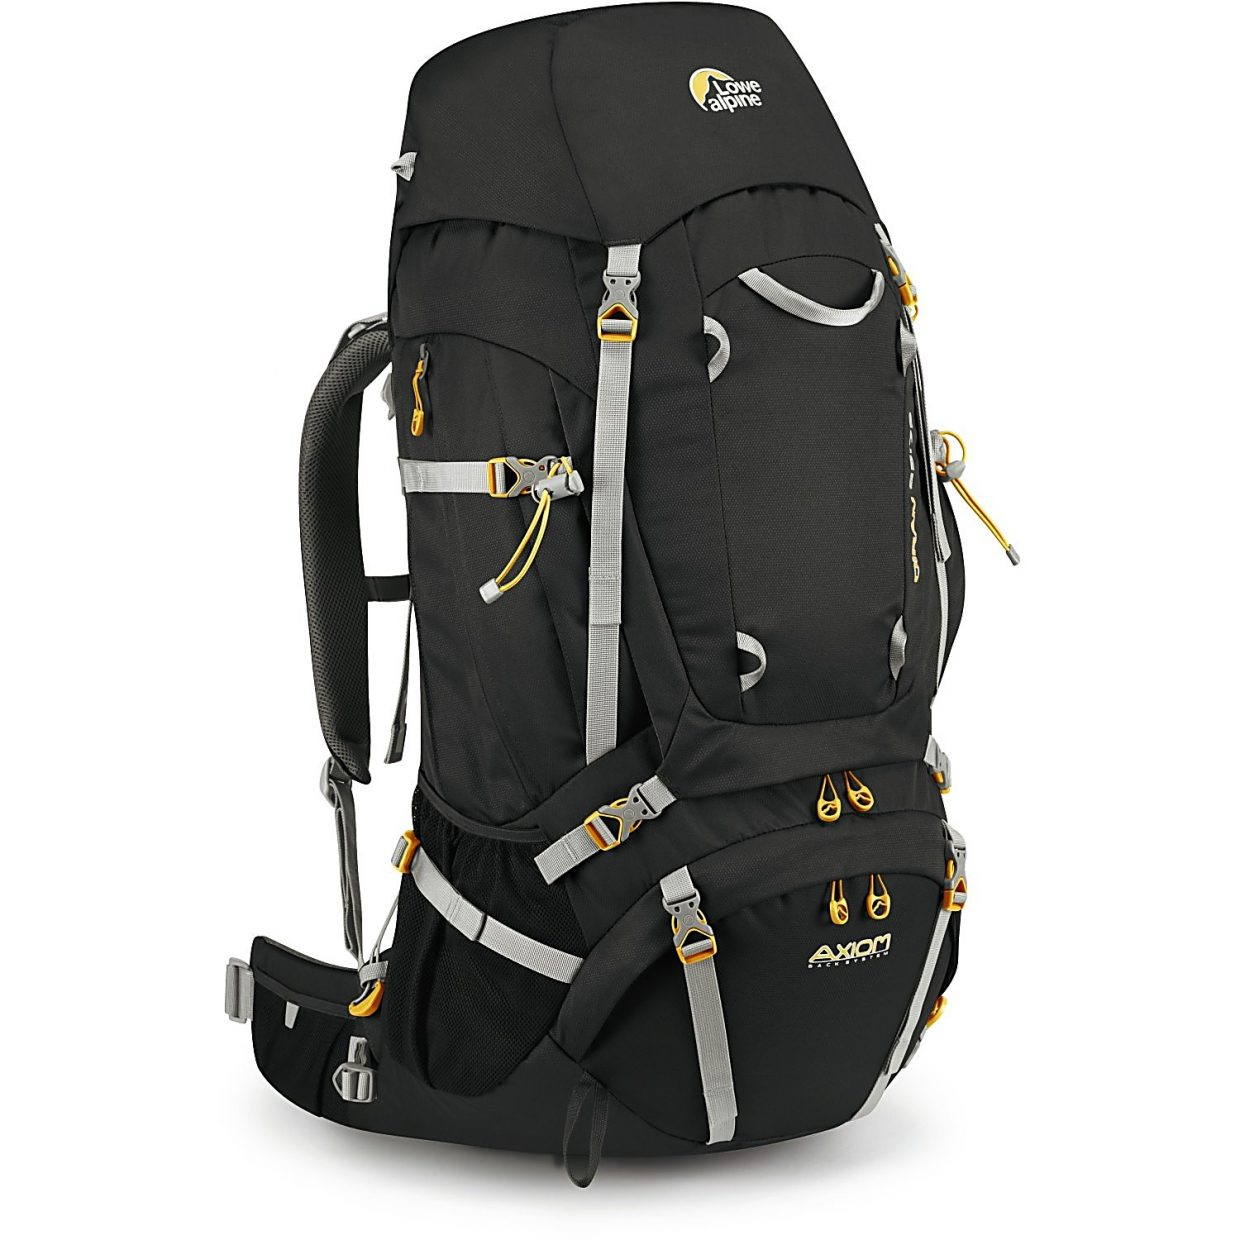 The Lowe Alpine Diran 65 pack, a multi-purpose trekking pack with a sliding adjustment system and expandable interior pockets for up to 75 liters.